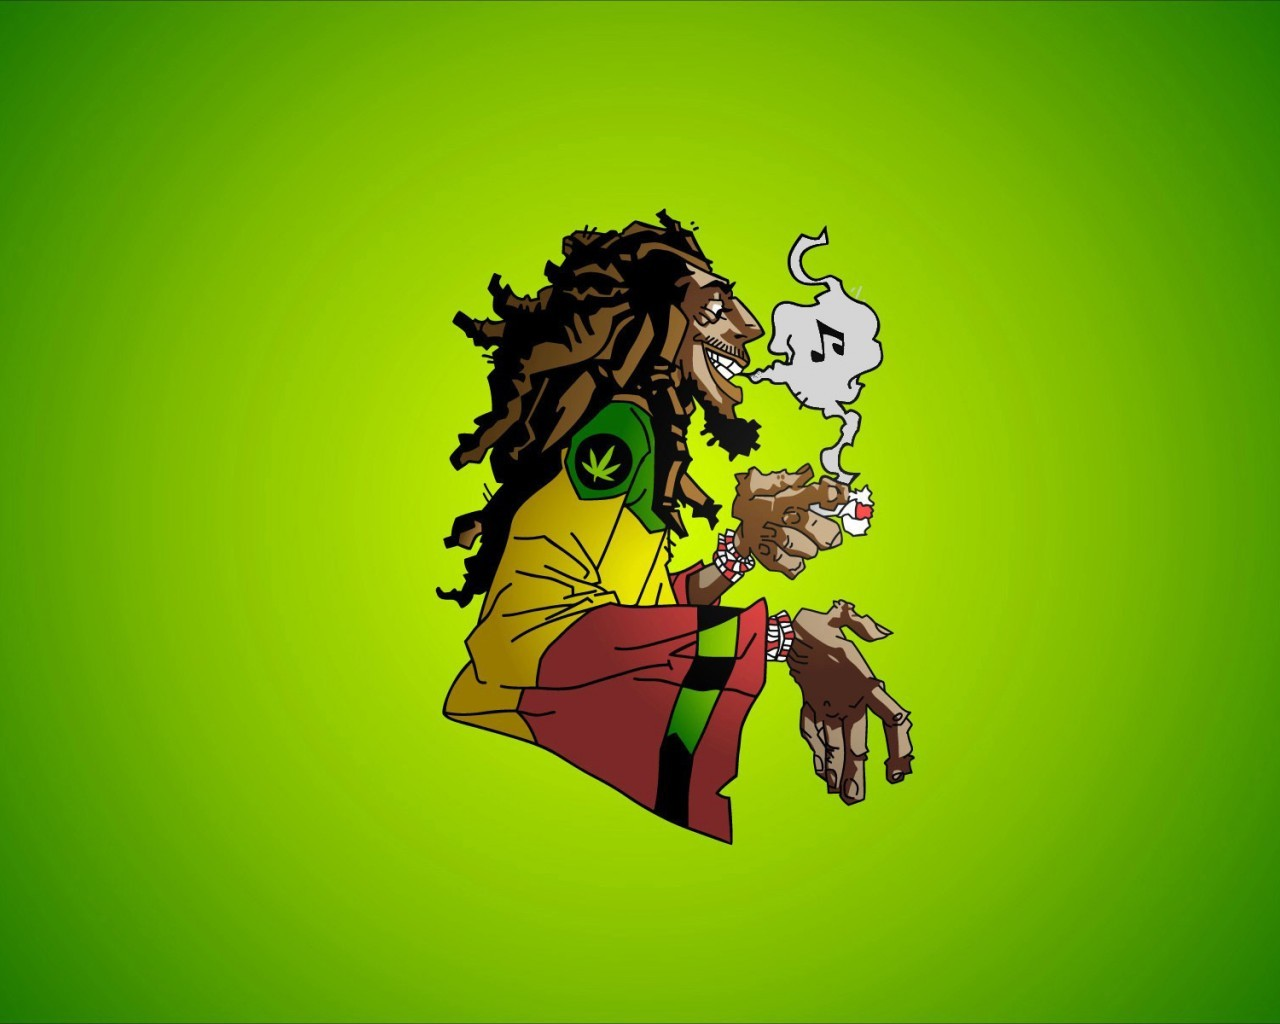 20974 download wallpaper Funny, Men, People, Marijuana, Cannabis screensavers and pictures for free